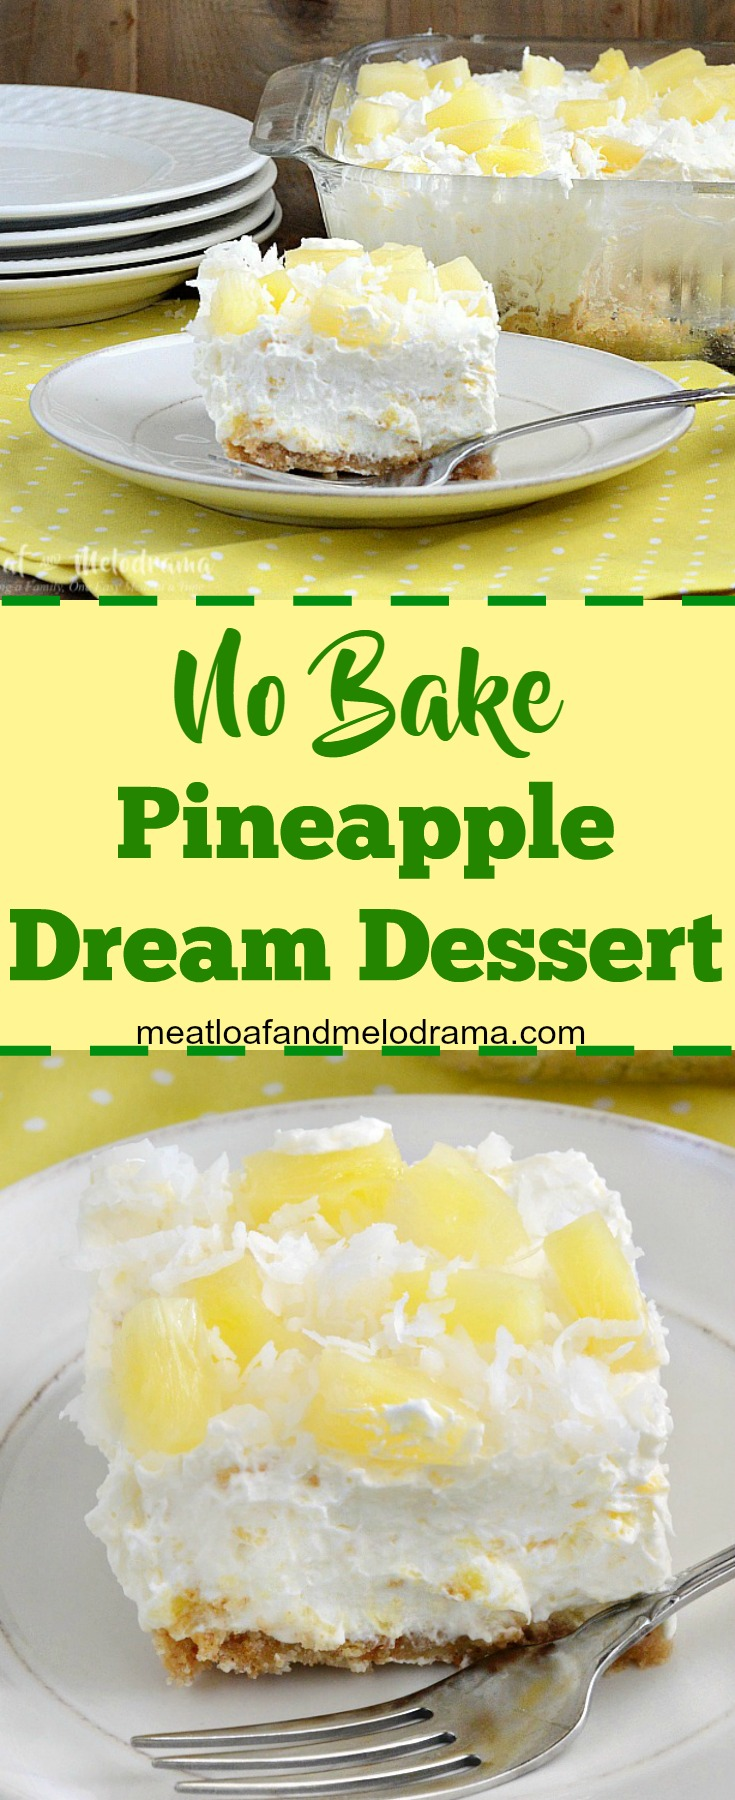 dream dessert pinterest promo graphic